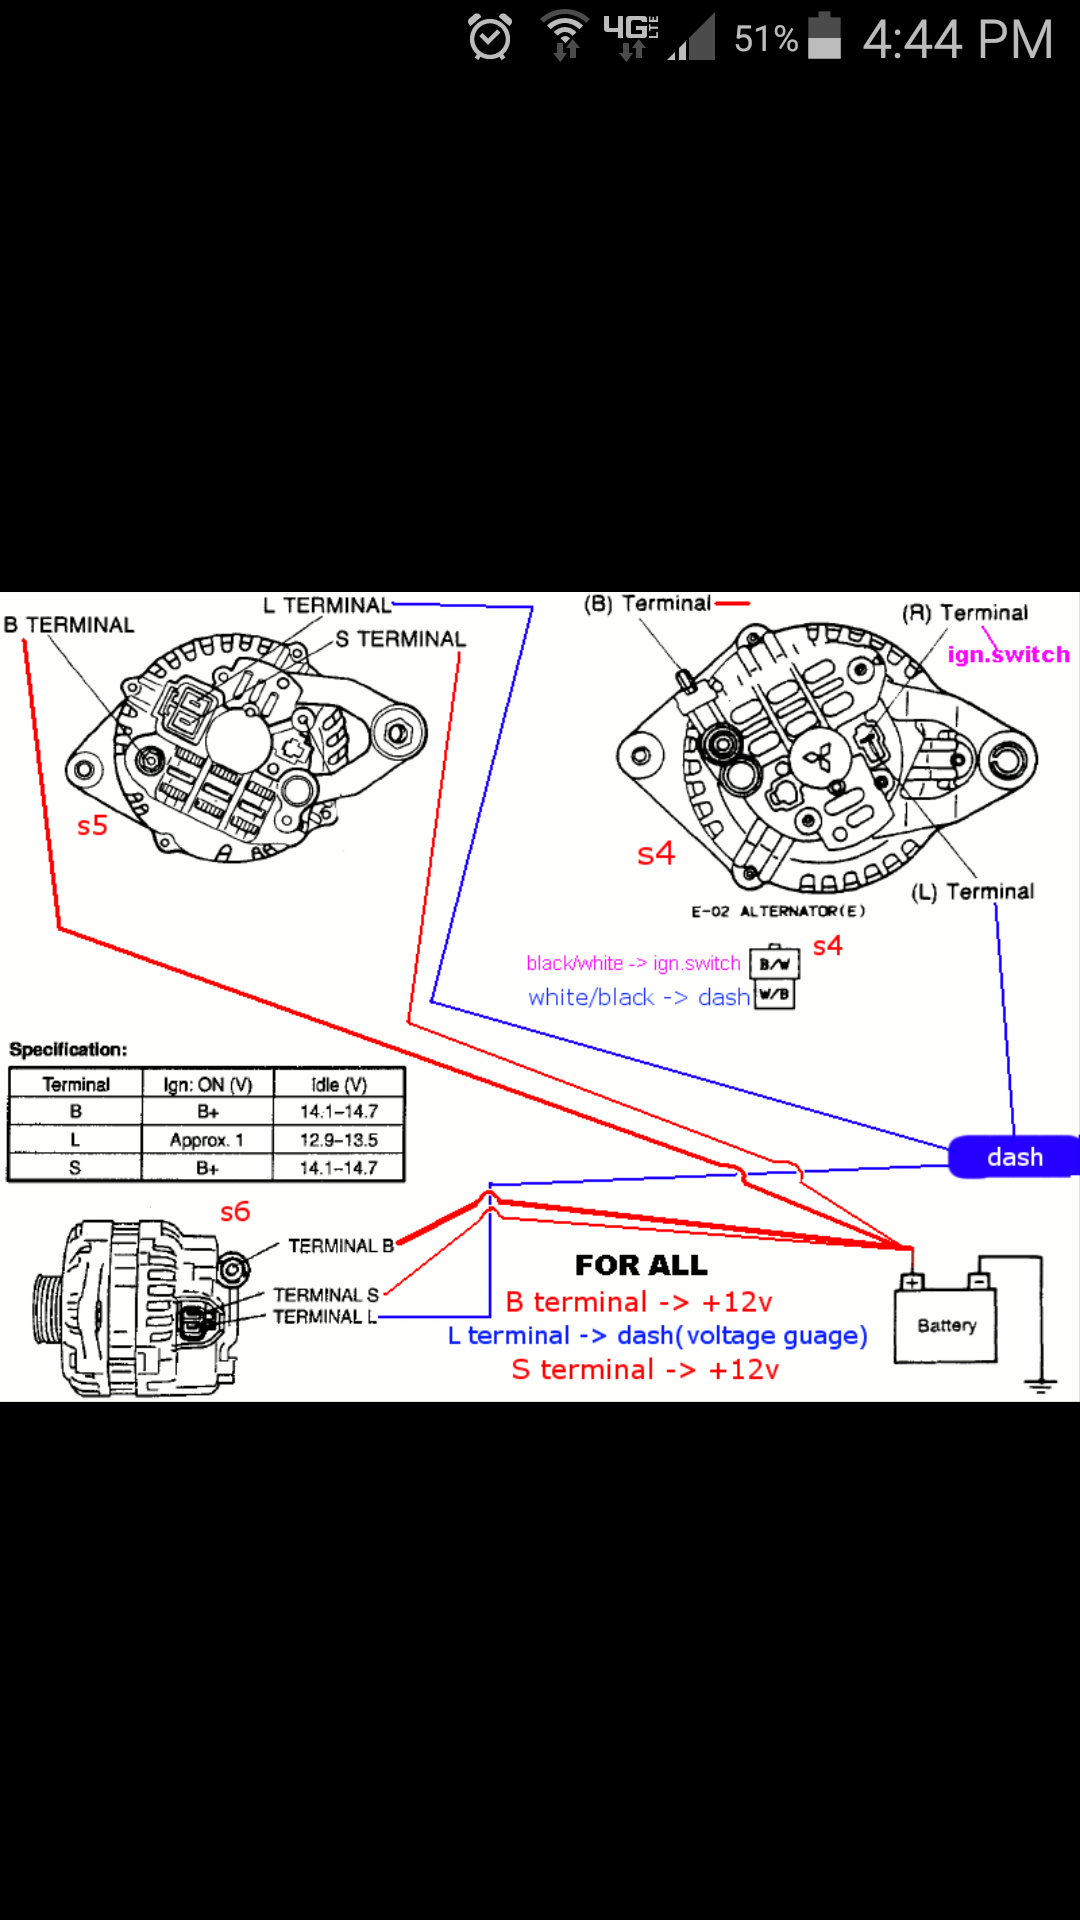 N3a7 Rx7 Wiring Diagram Will Be A Thing Diagrams Ecu Pinout For Rx7club Com Mazda Forum Rh 1987 Engine